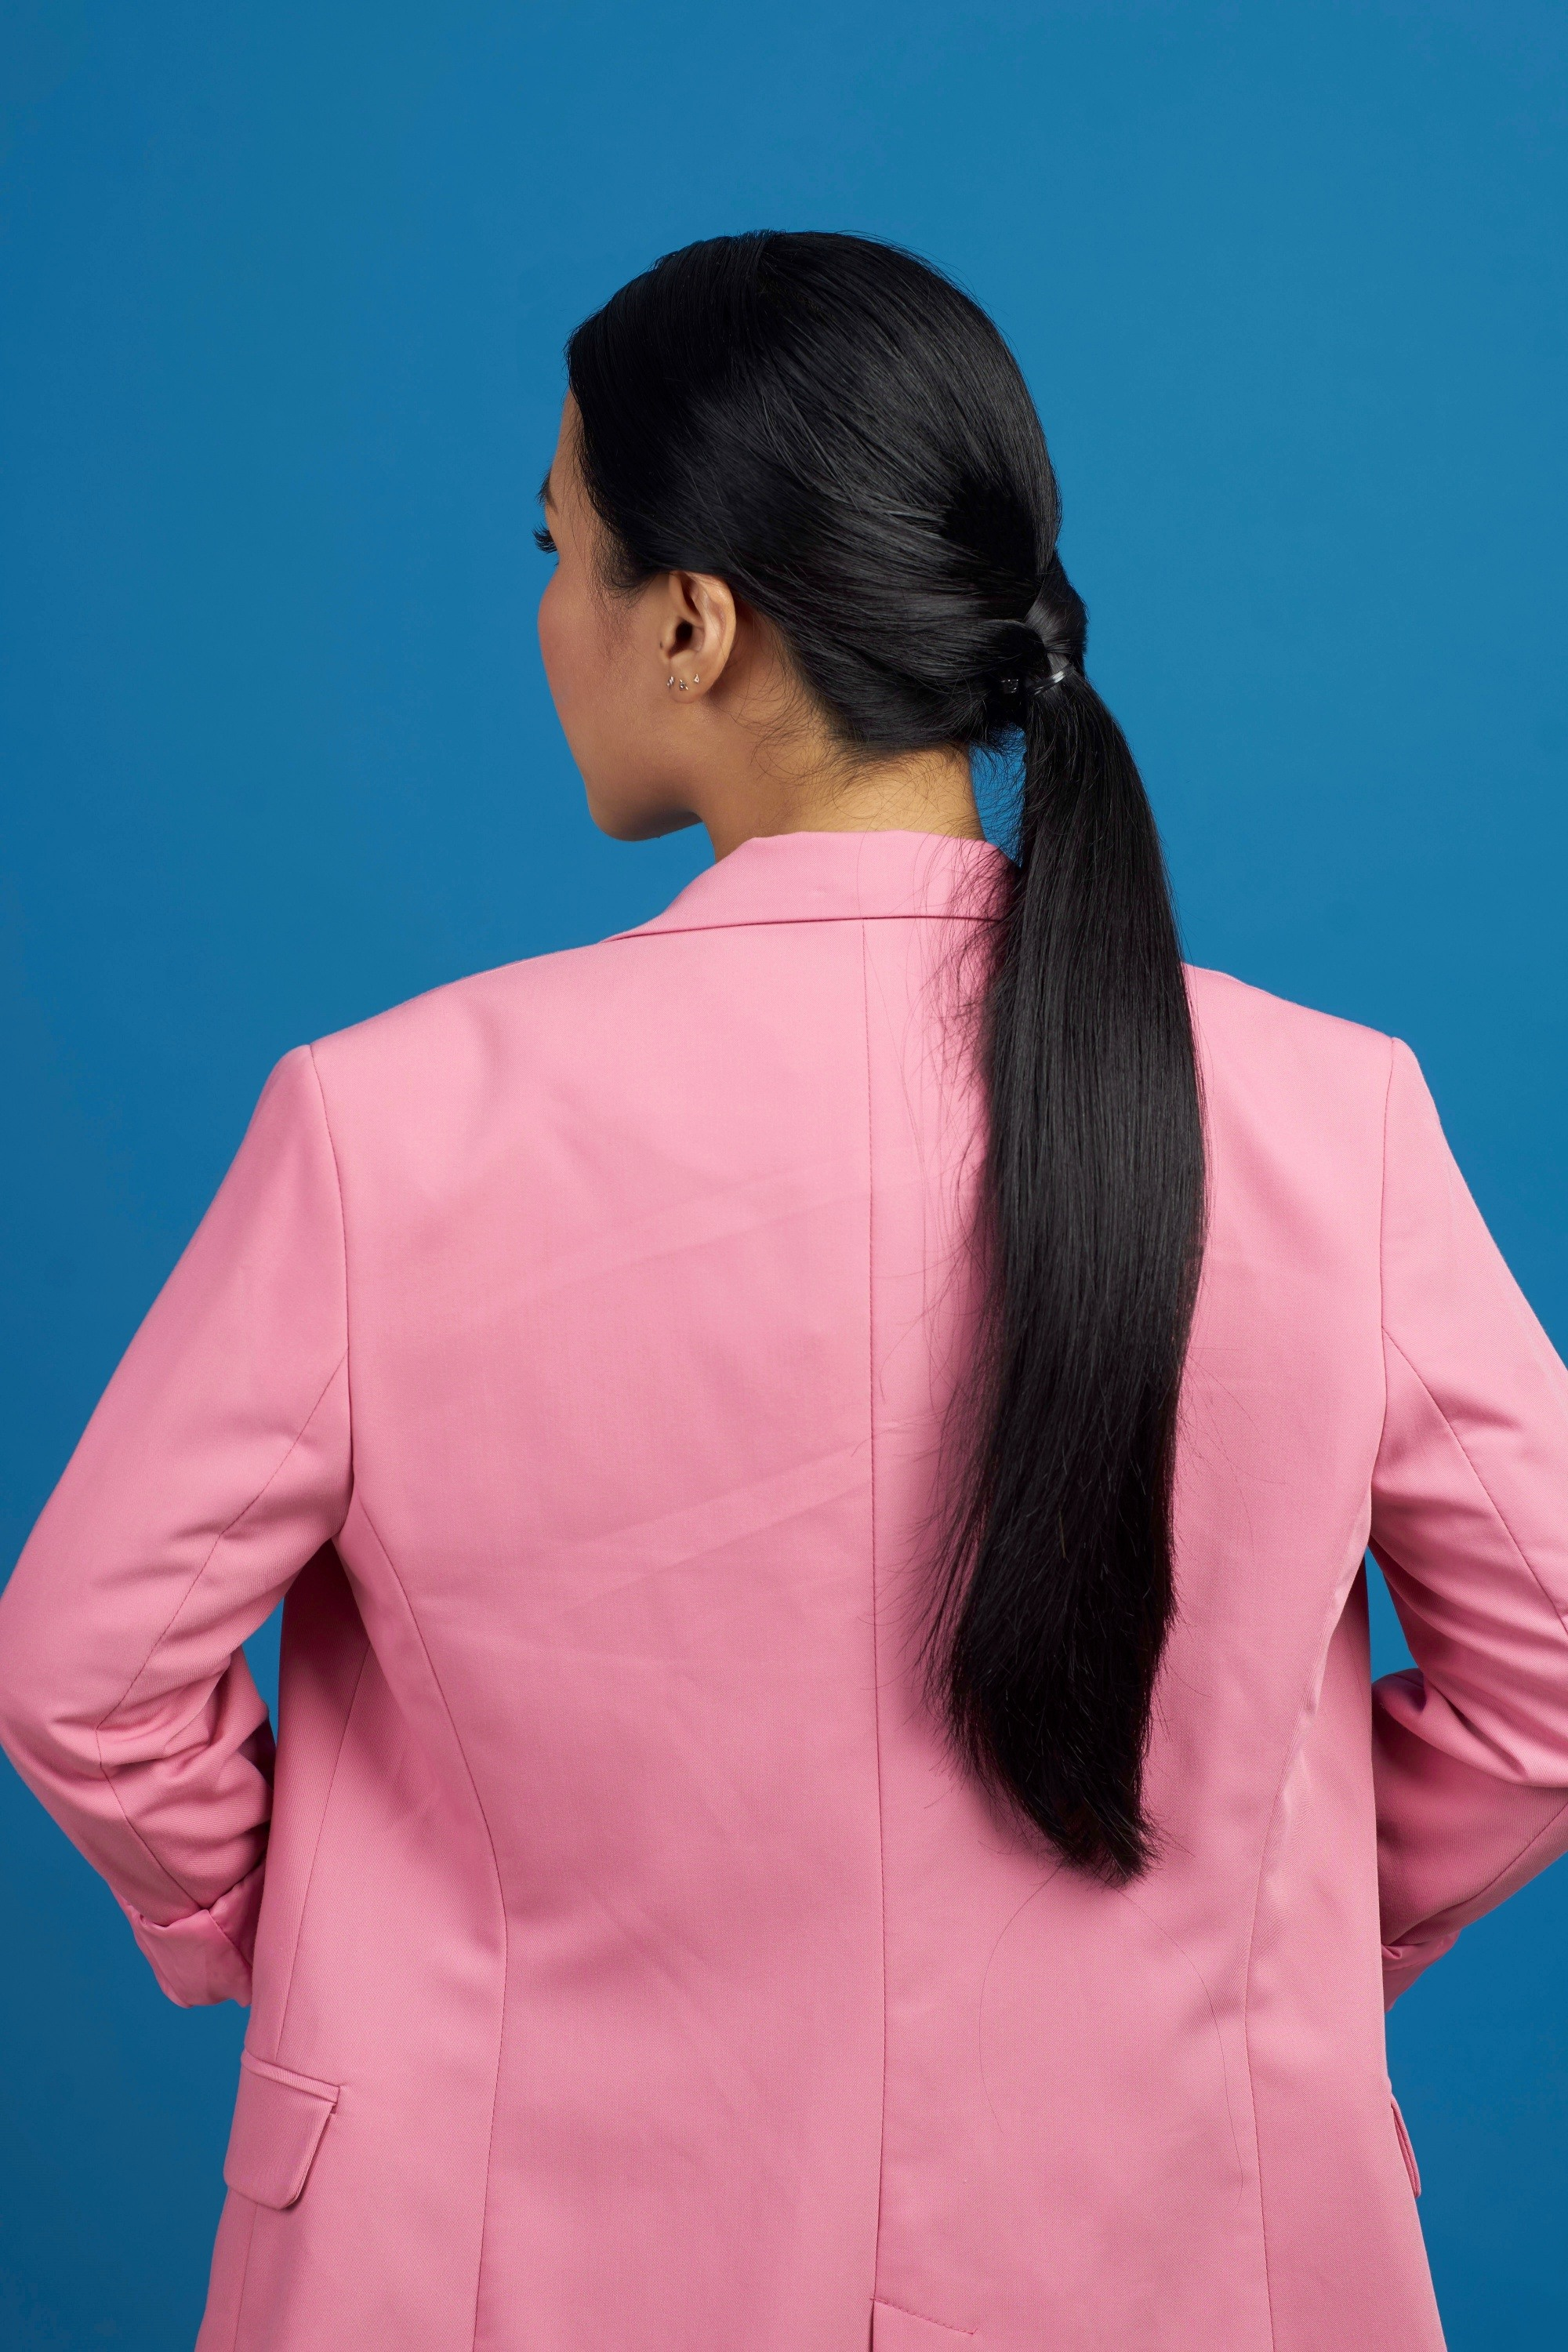 Vintage ponytail: Back shot of an Asian woman with long black hair in tucked in ponytail wearing a pink suit